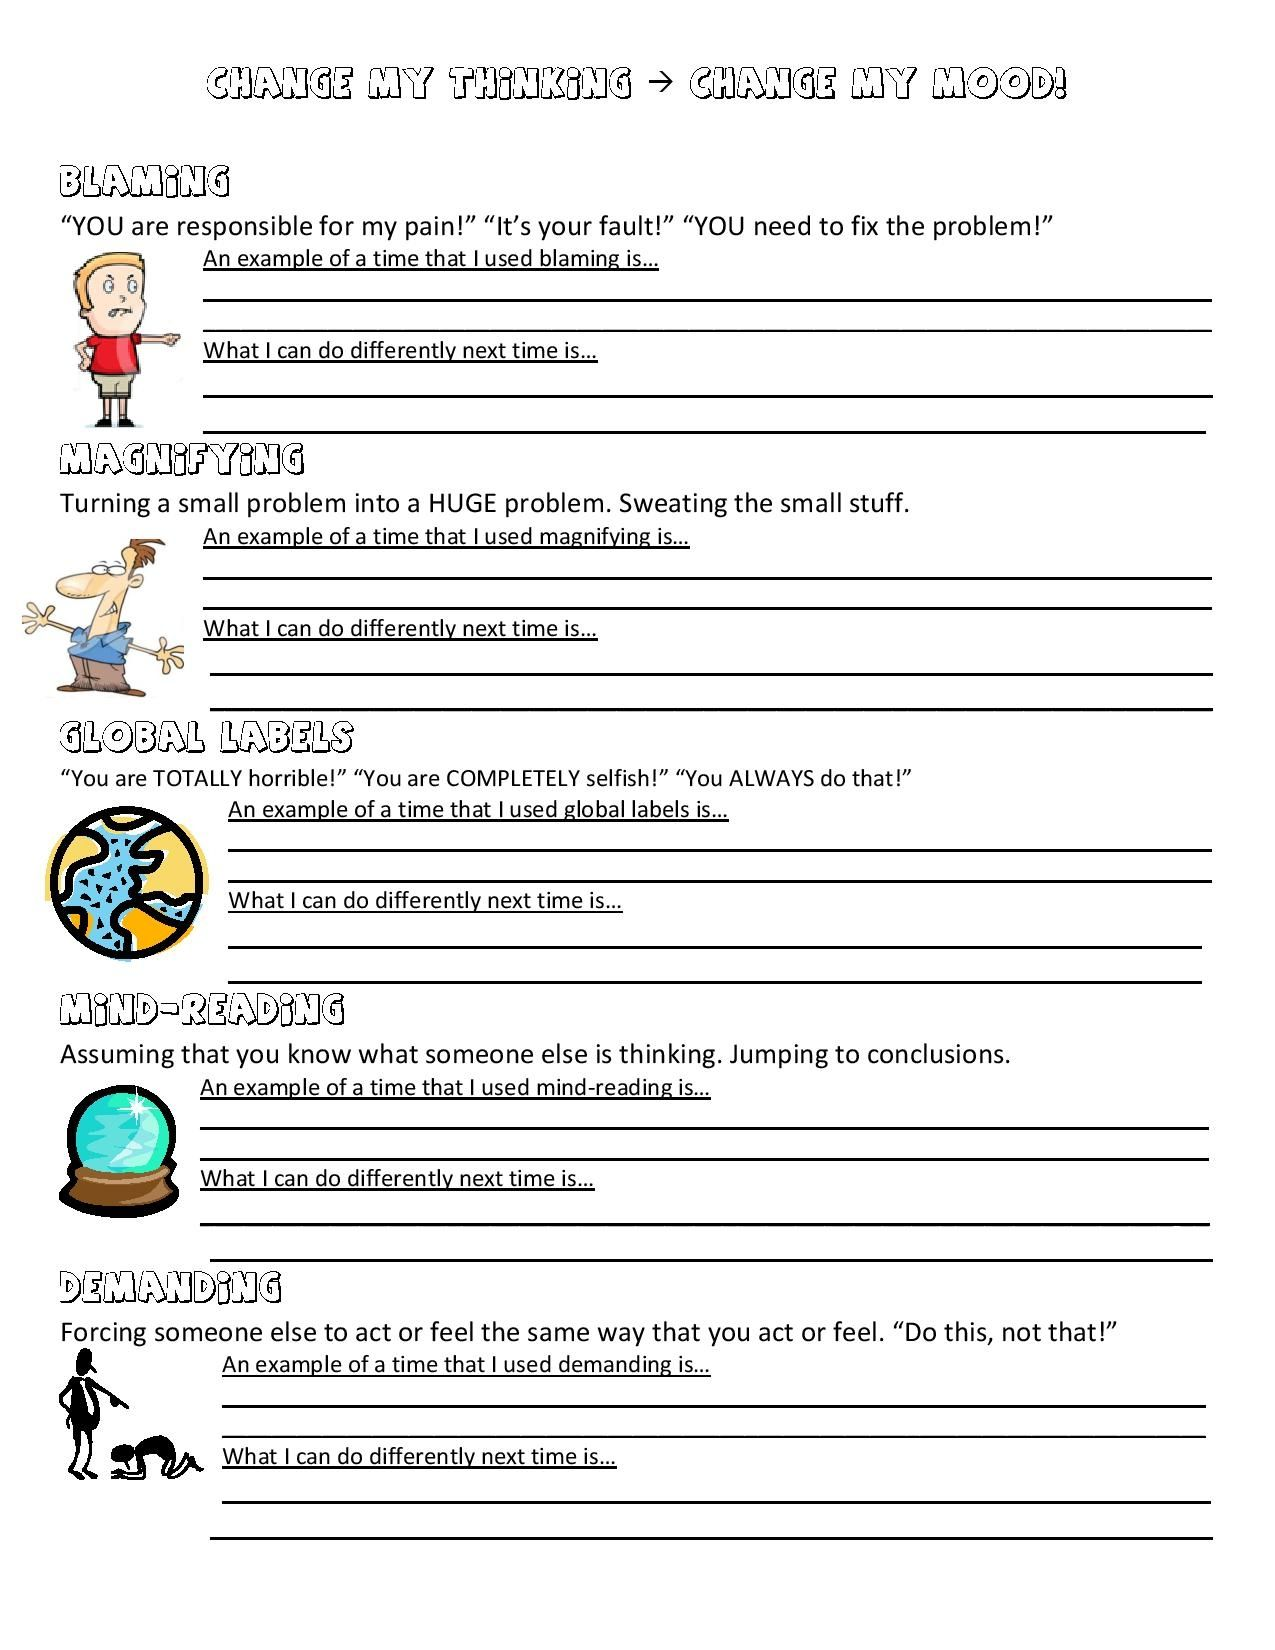 Printables Anger Management Worksheets For Adults 1000 images about helpful worksheets on pinterest heather orourke